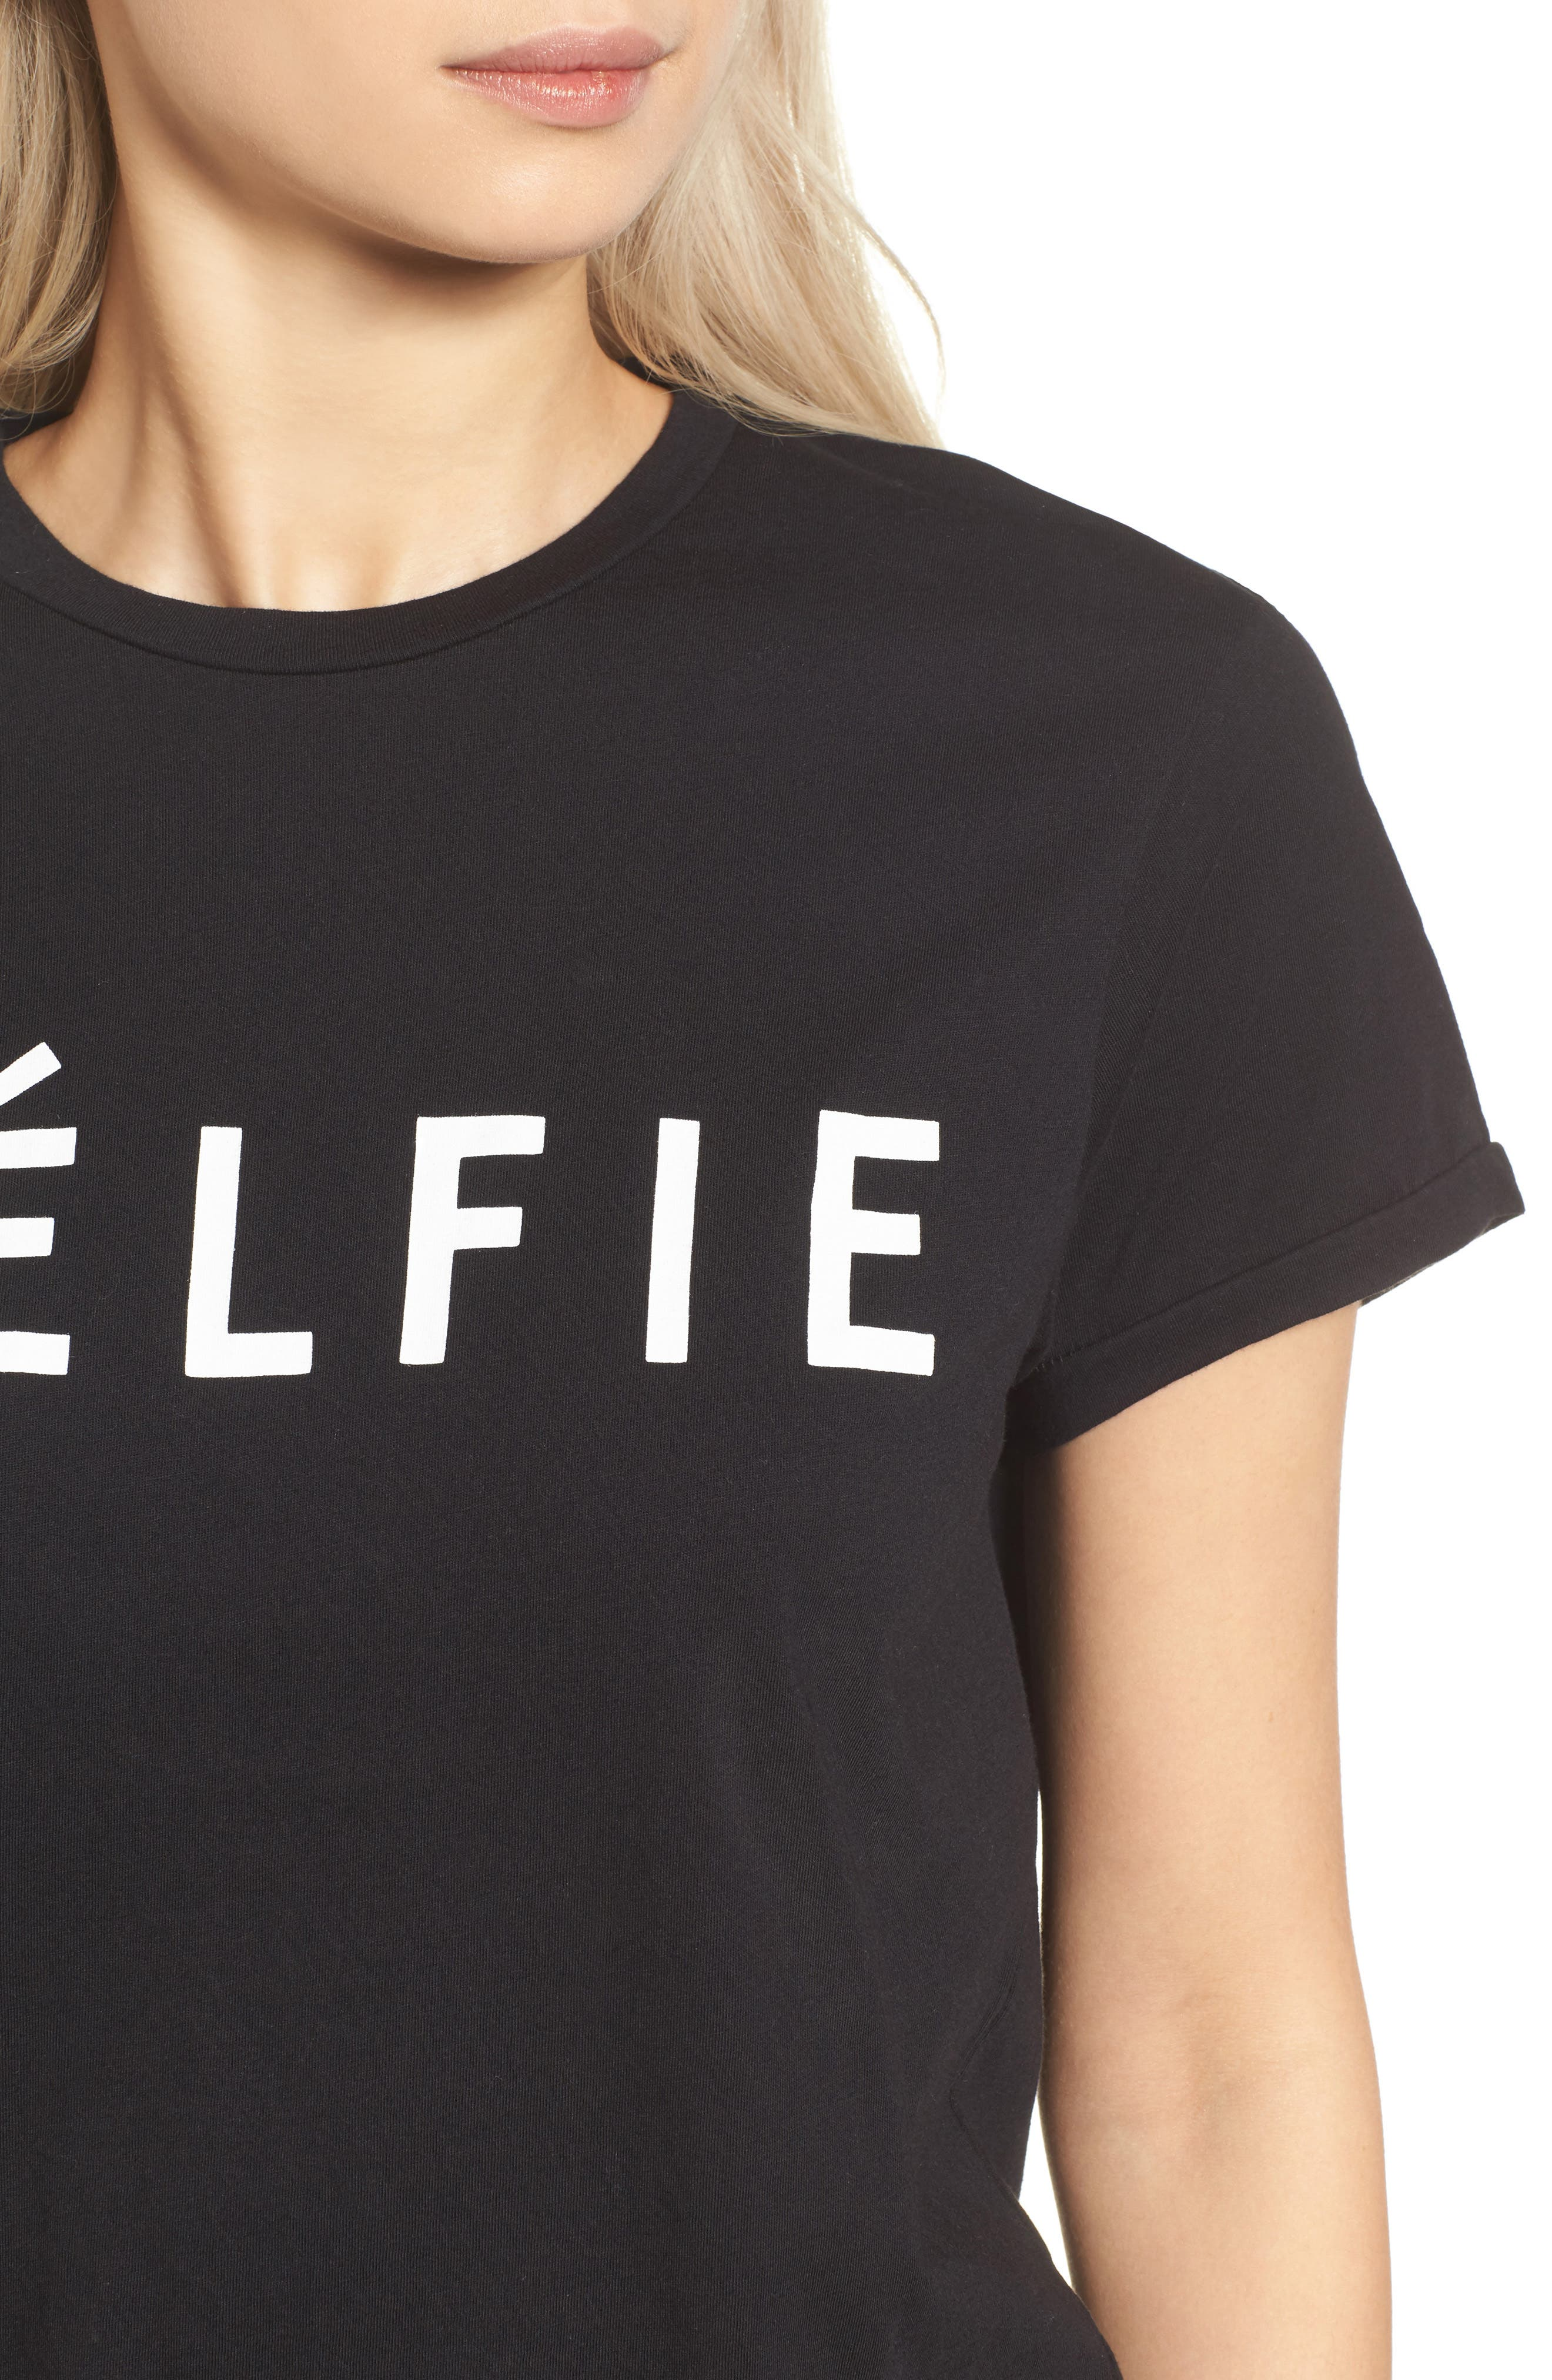 SINCERELY JULES, 'Célfie' Graphic Tee, Alternate thumbnail 4, color, 001